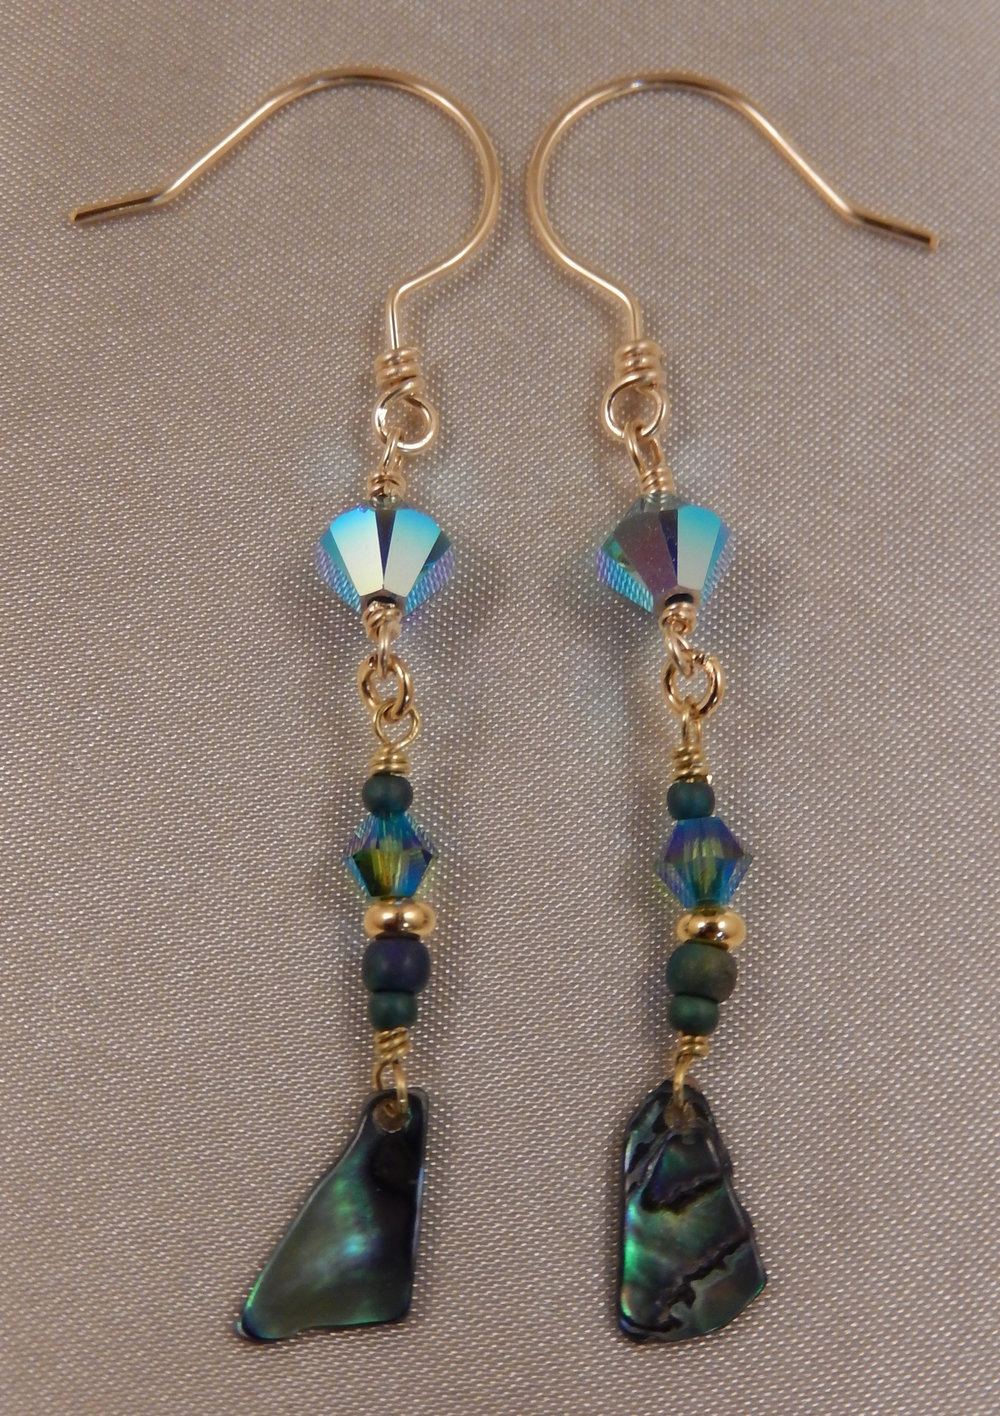 New Zealand Paua Shell and Swarovski Crystal dangle earrings with handcrafted hammered fishhook earwires